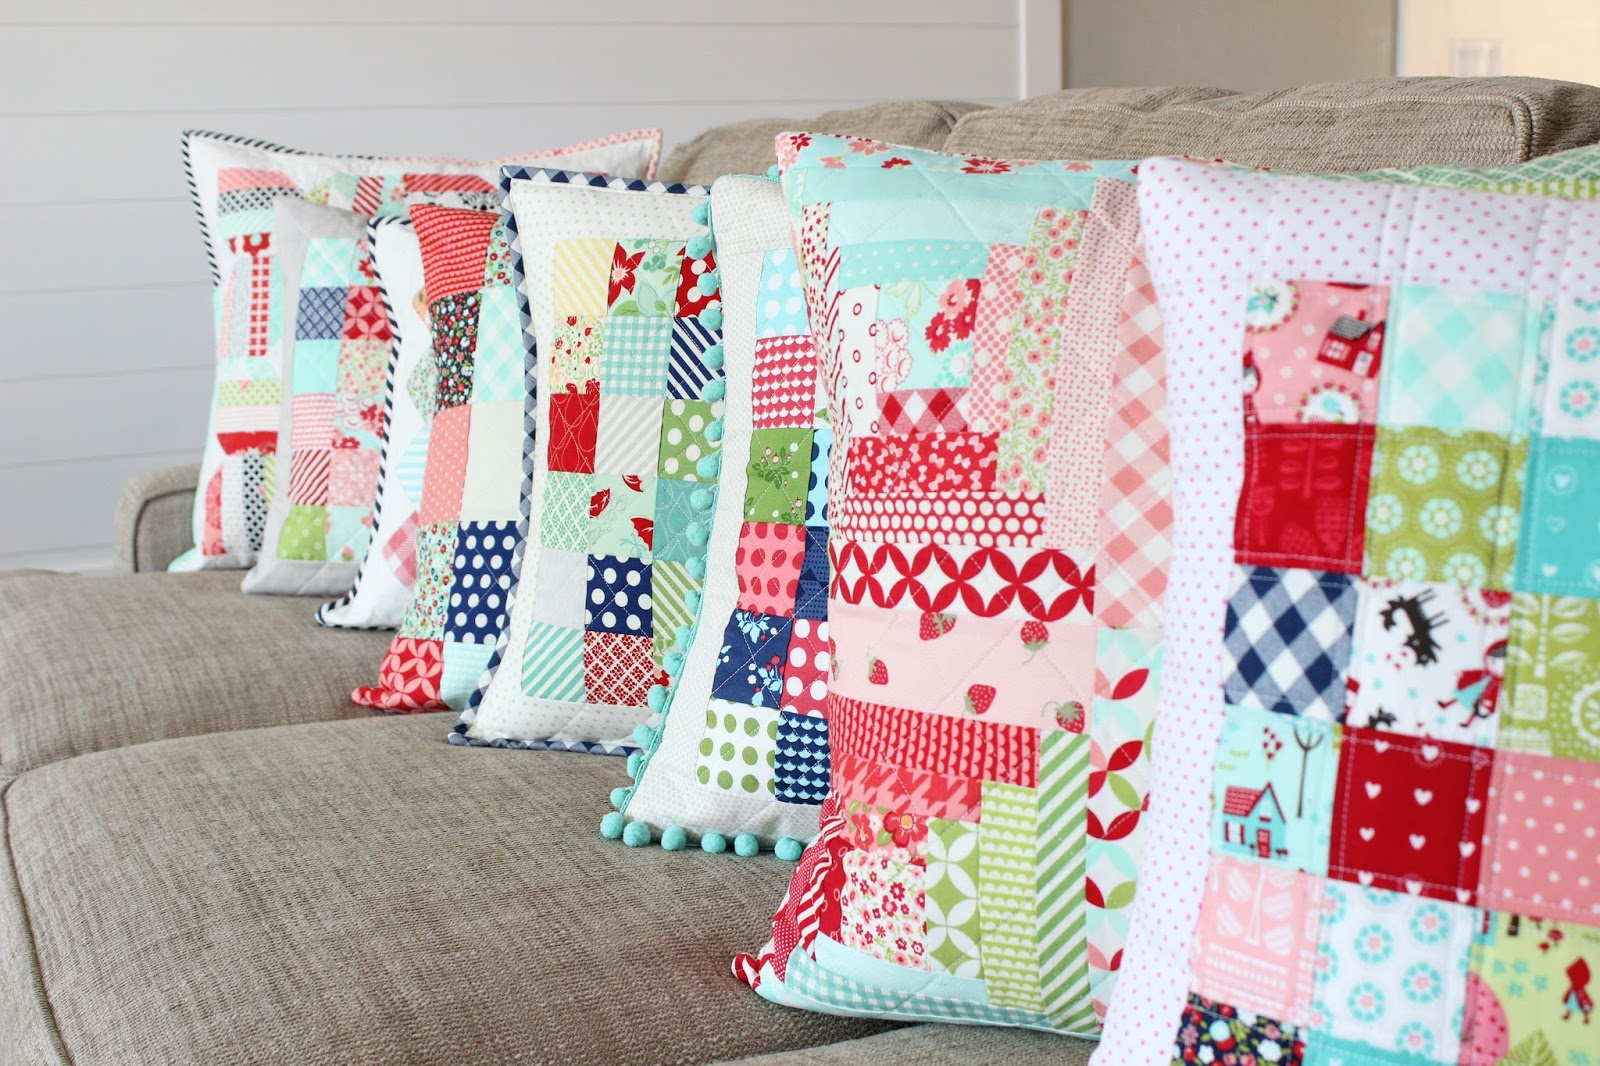 Quilting Patterns For Pillow Covers : Everyday Celebrations: Tutorial: Tips for Perfect Quilted Pillows